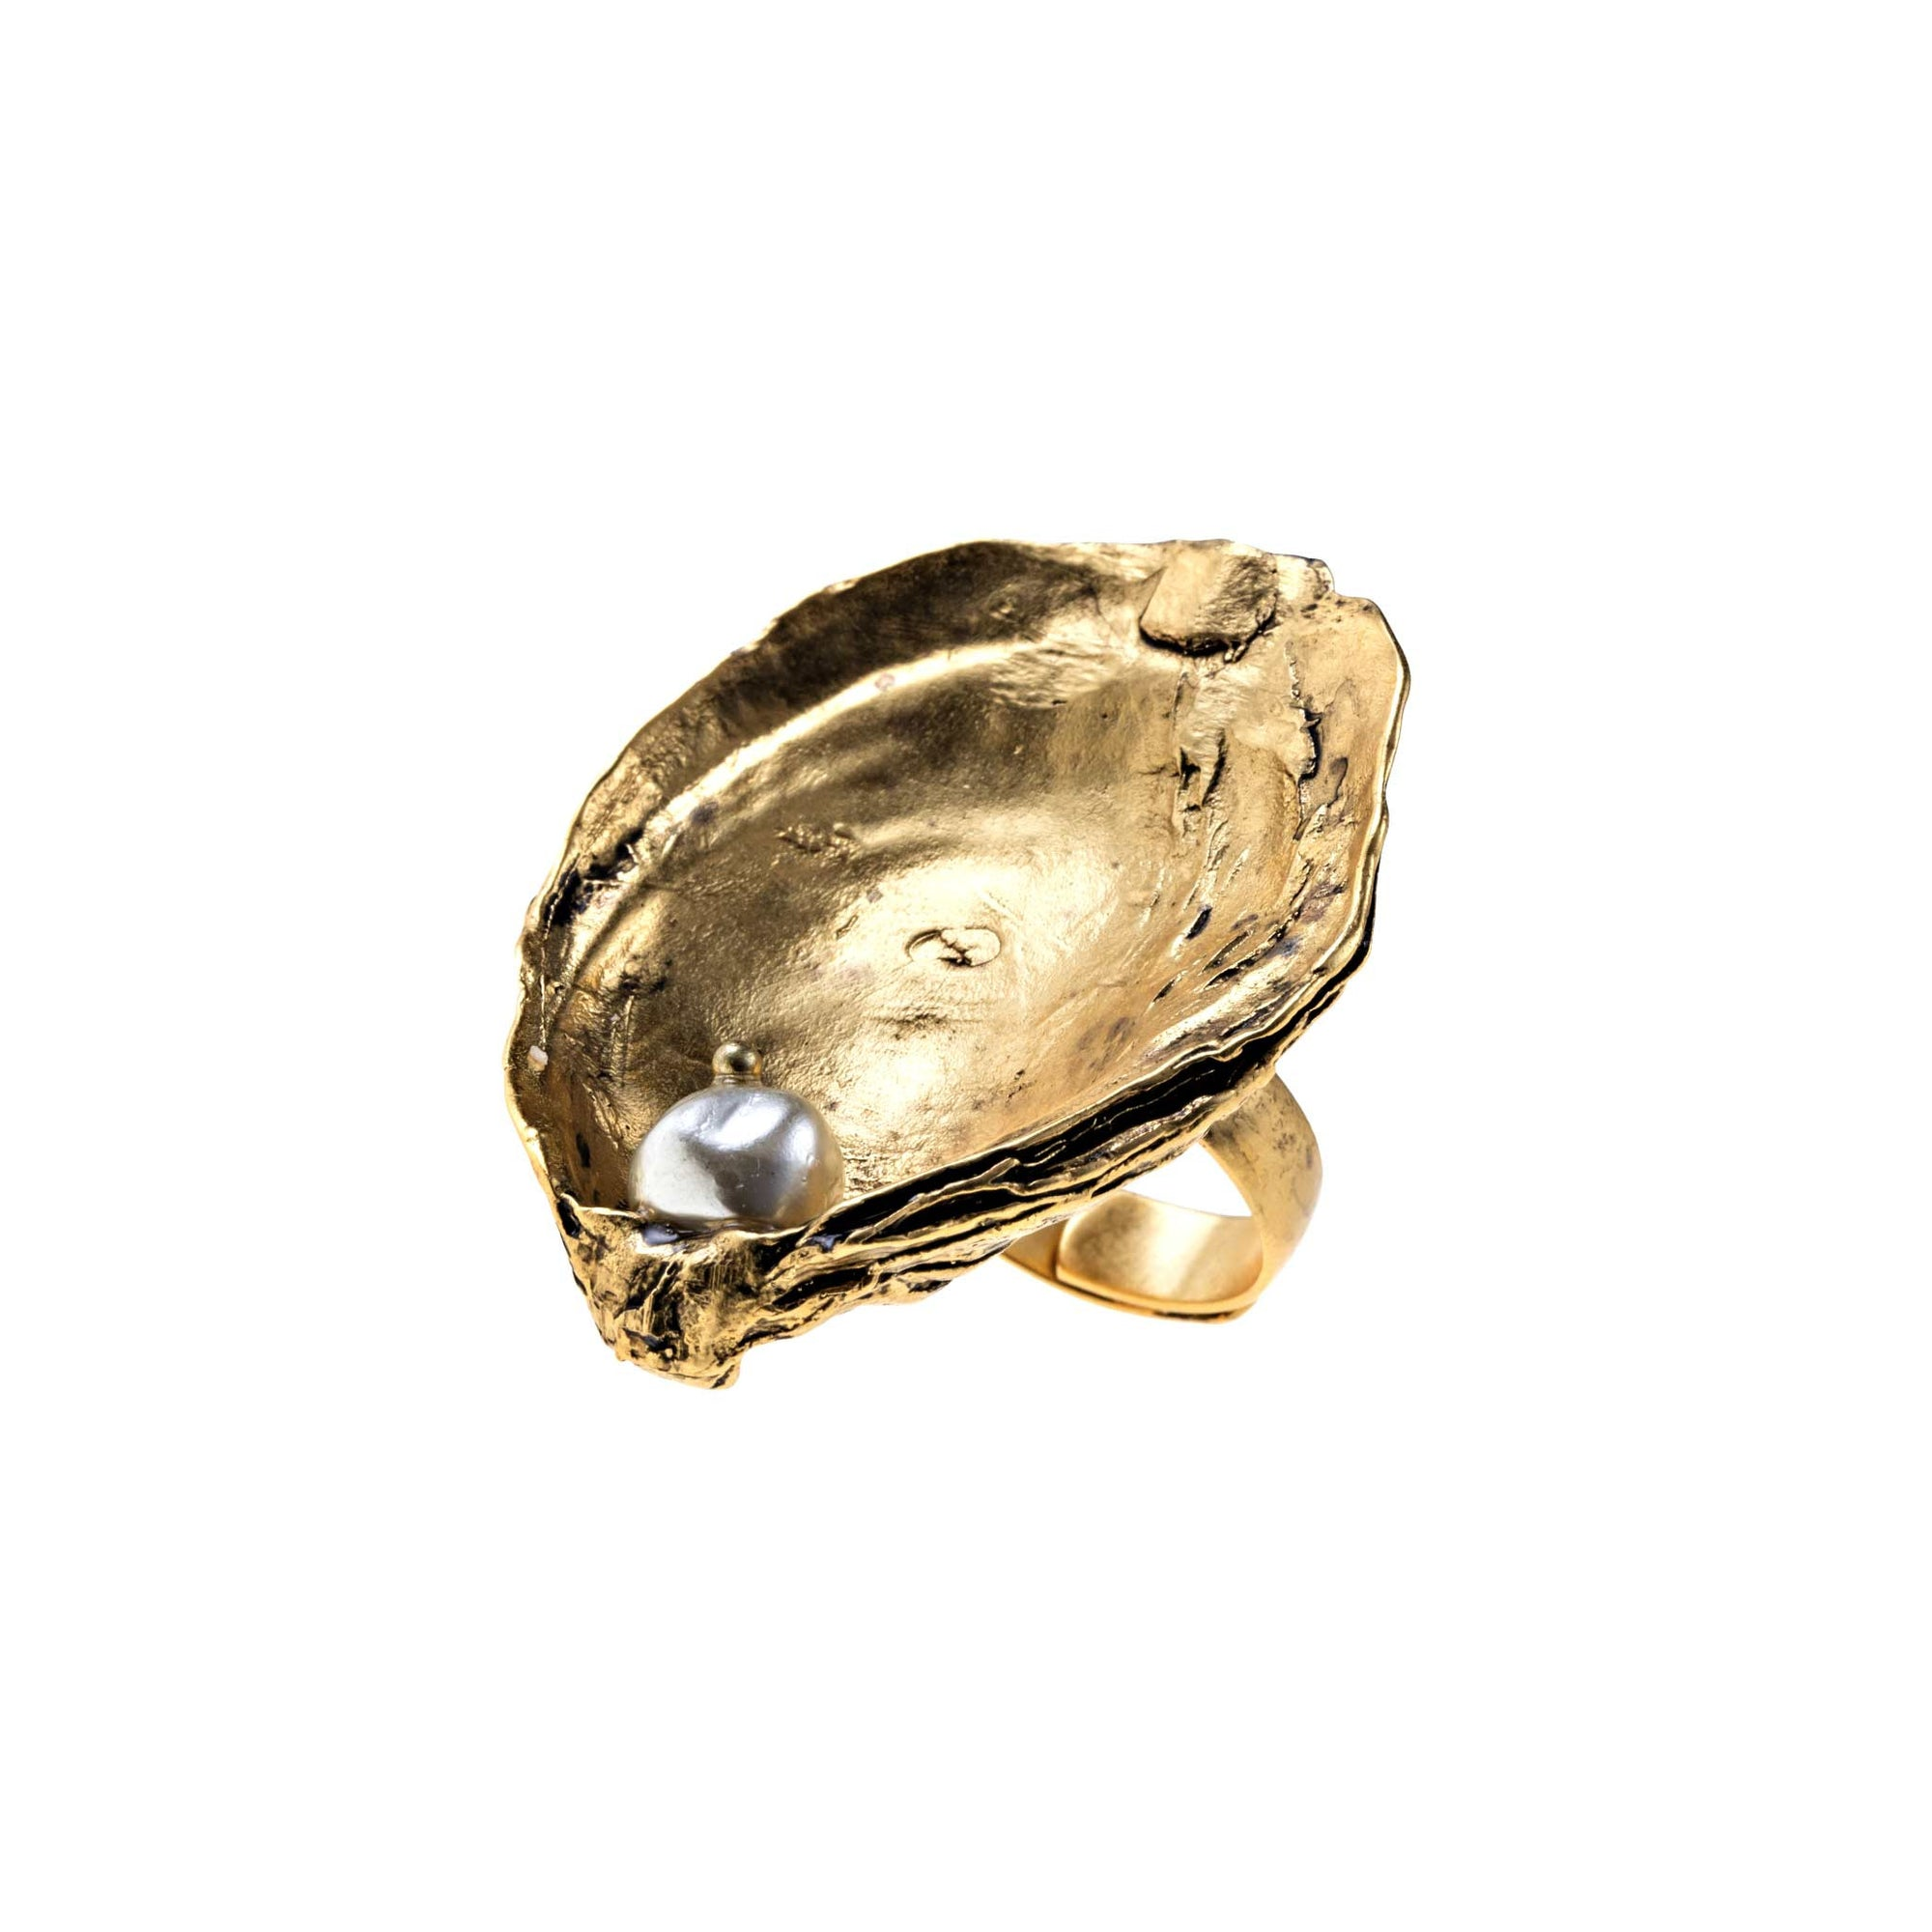 Oyster Shell Ring in Gold with Resin Pearl